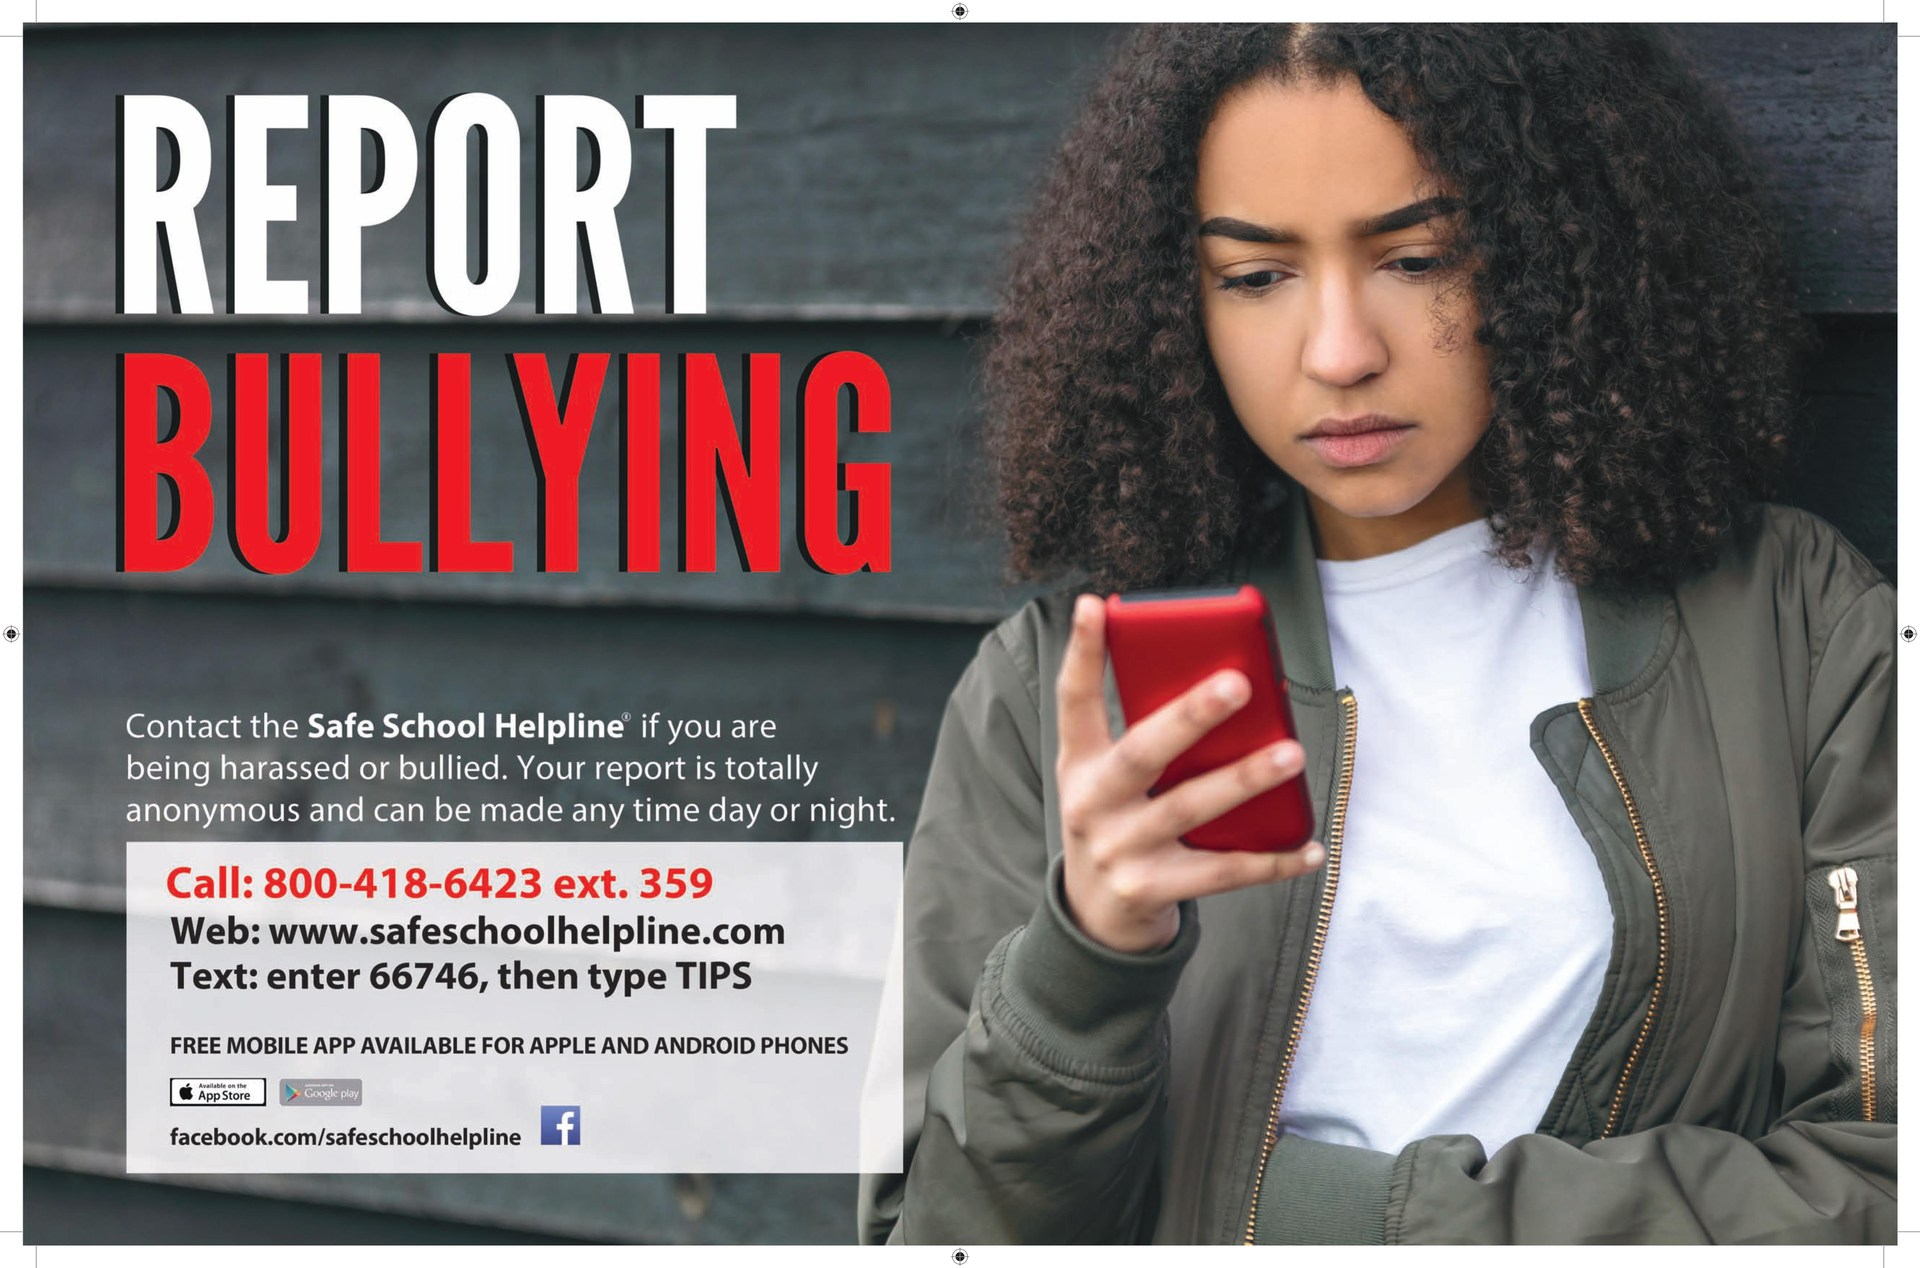 Report bullying poster with contact information